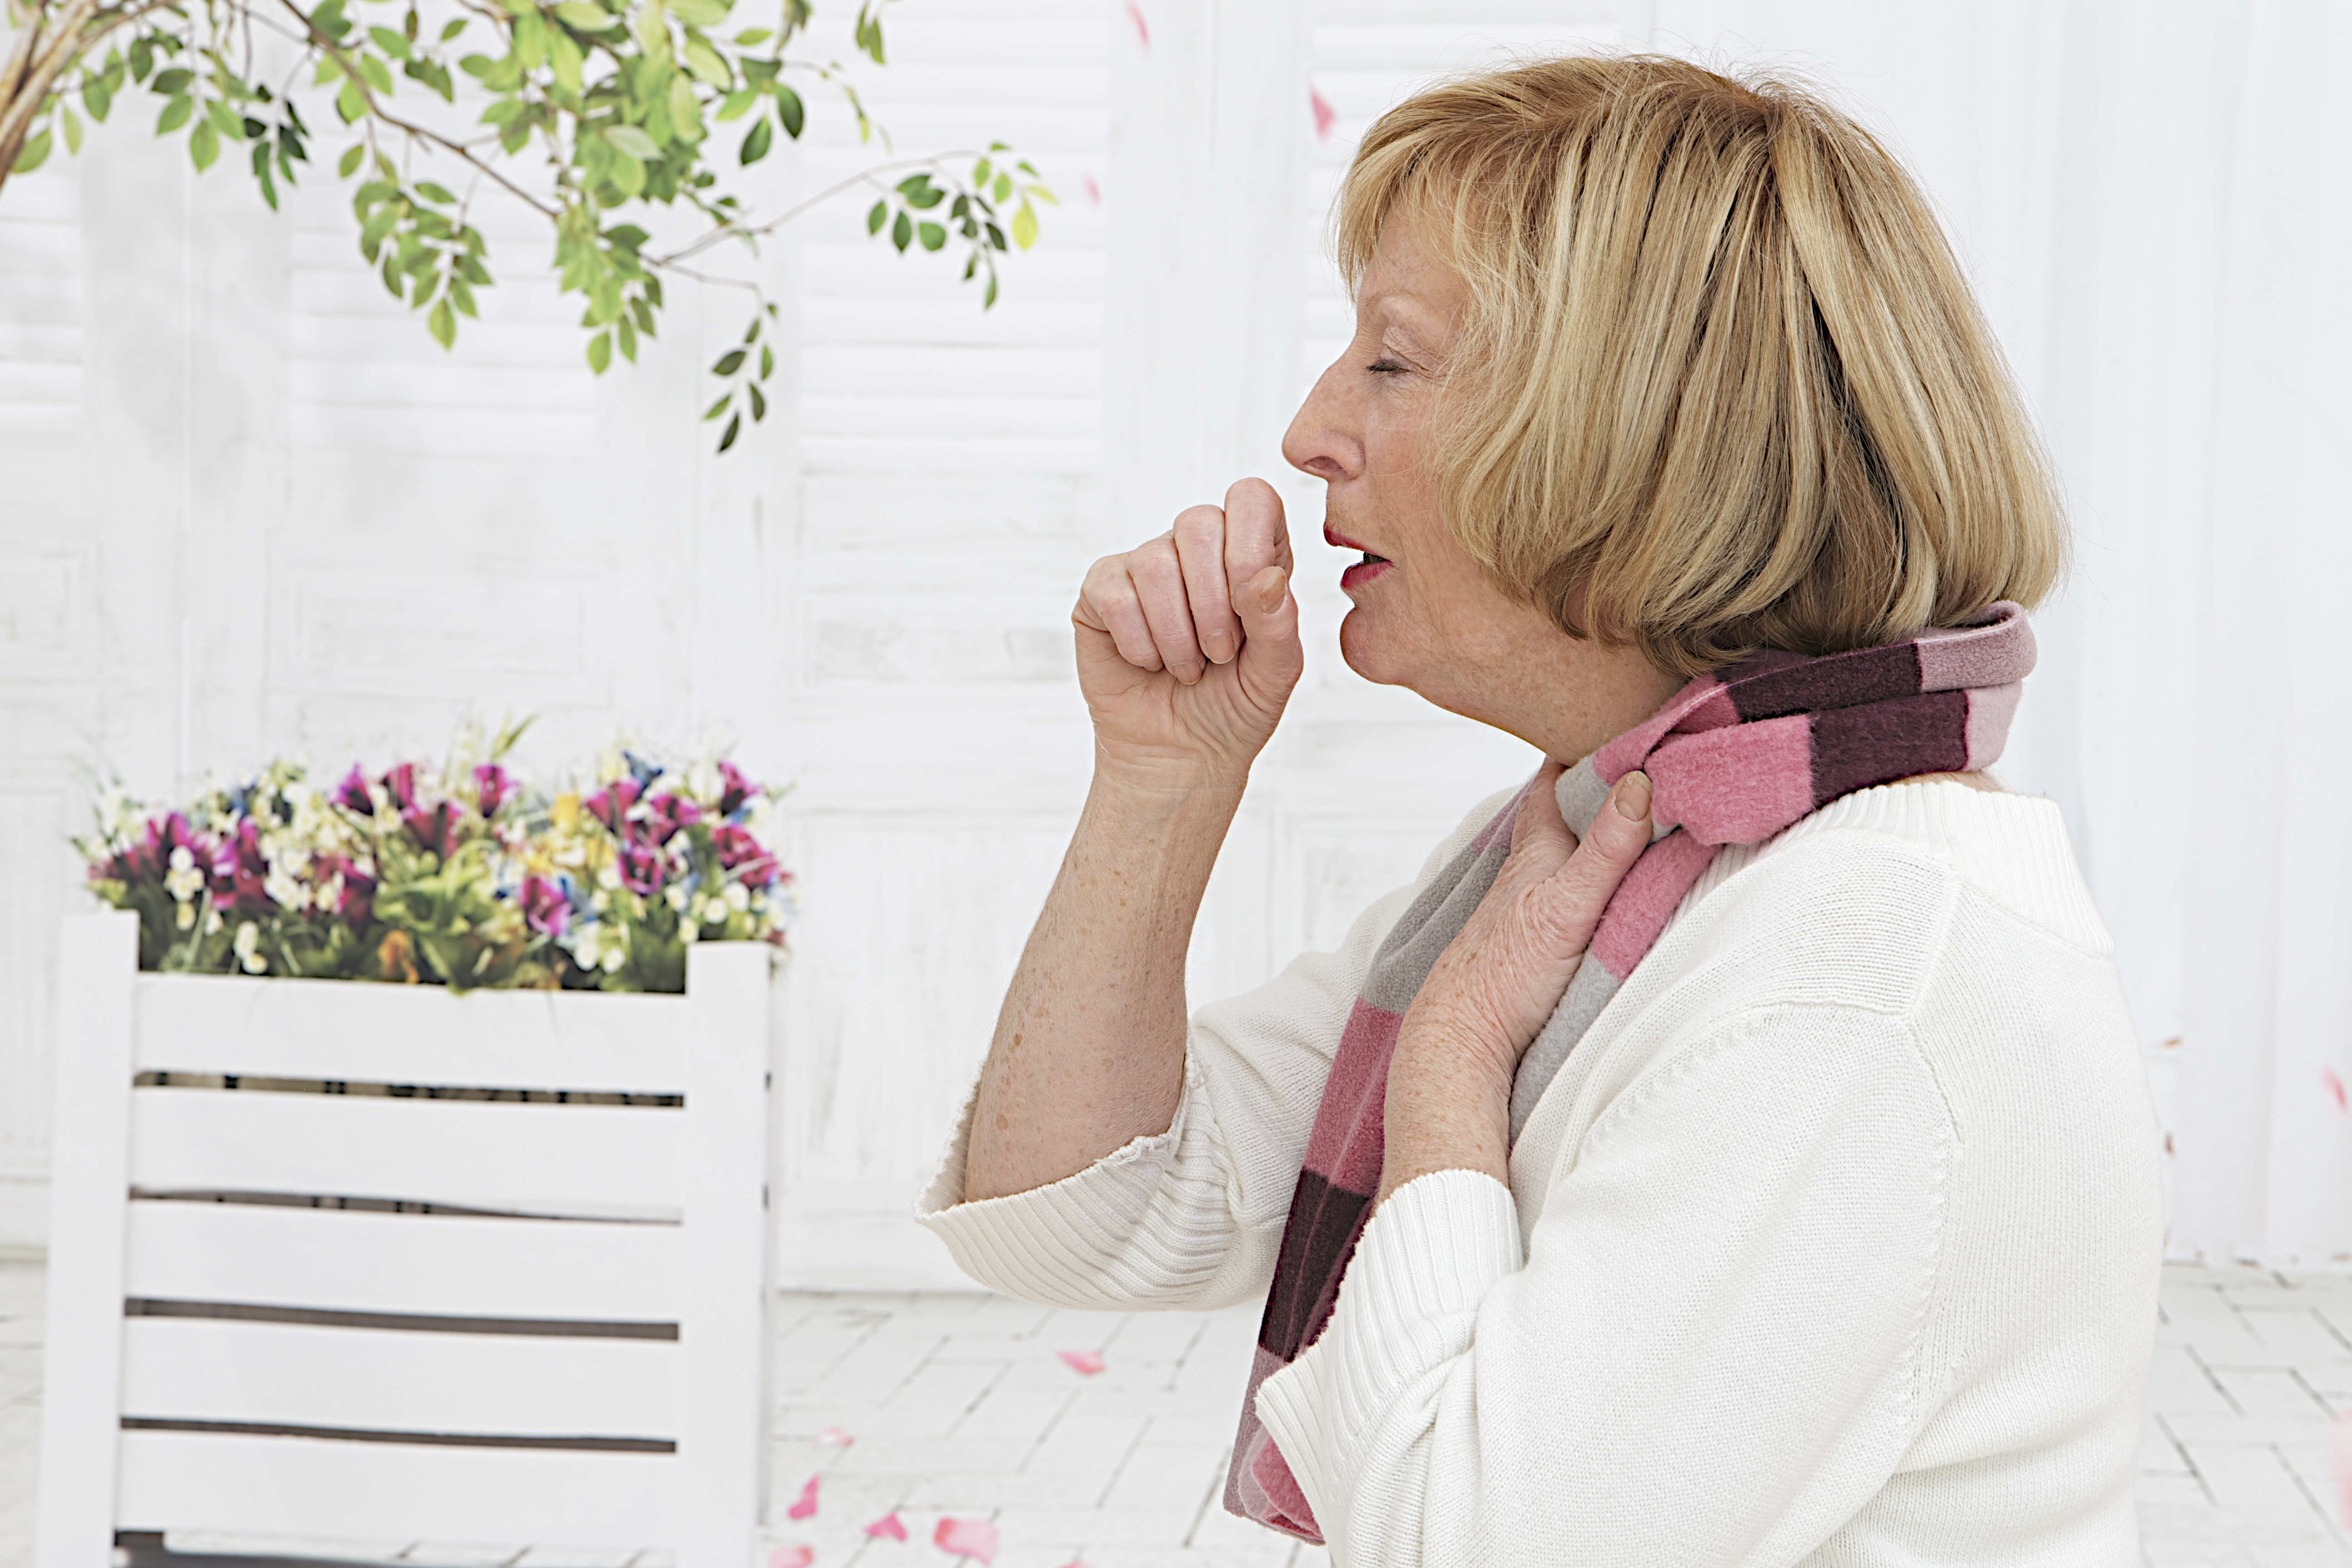 Pneumonia is a common illness that many people experience, both children and adults. Here is an overview of this illness, its' symptoms, and its' treatment.